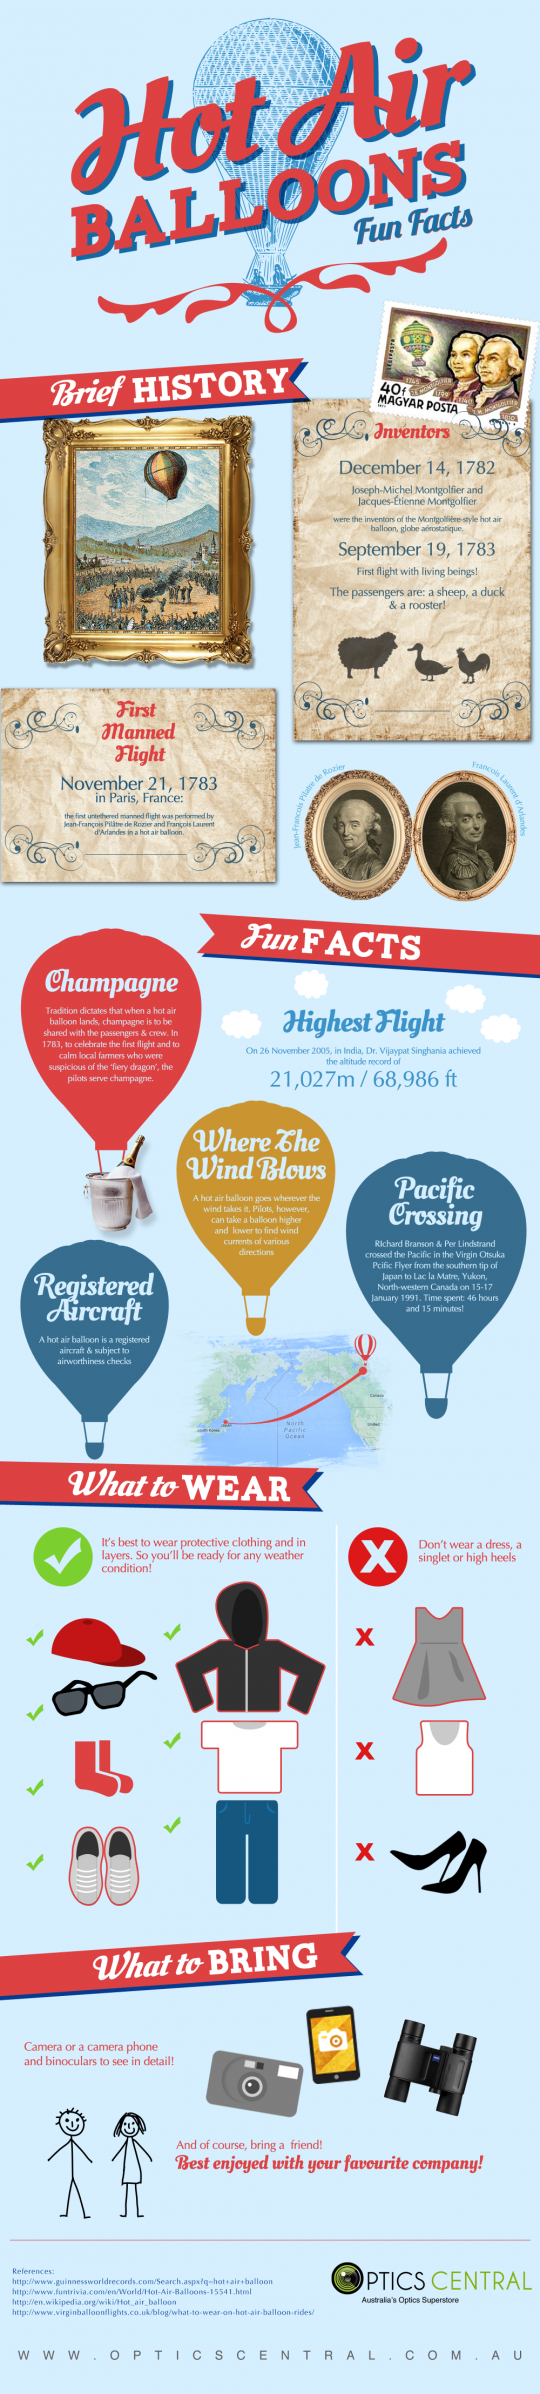 Hot Air Balloons Fun Facts